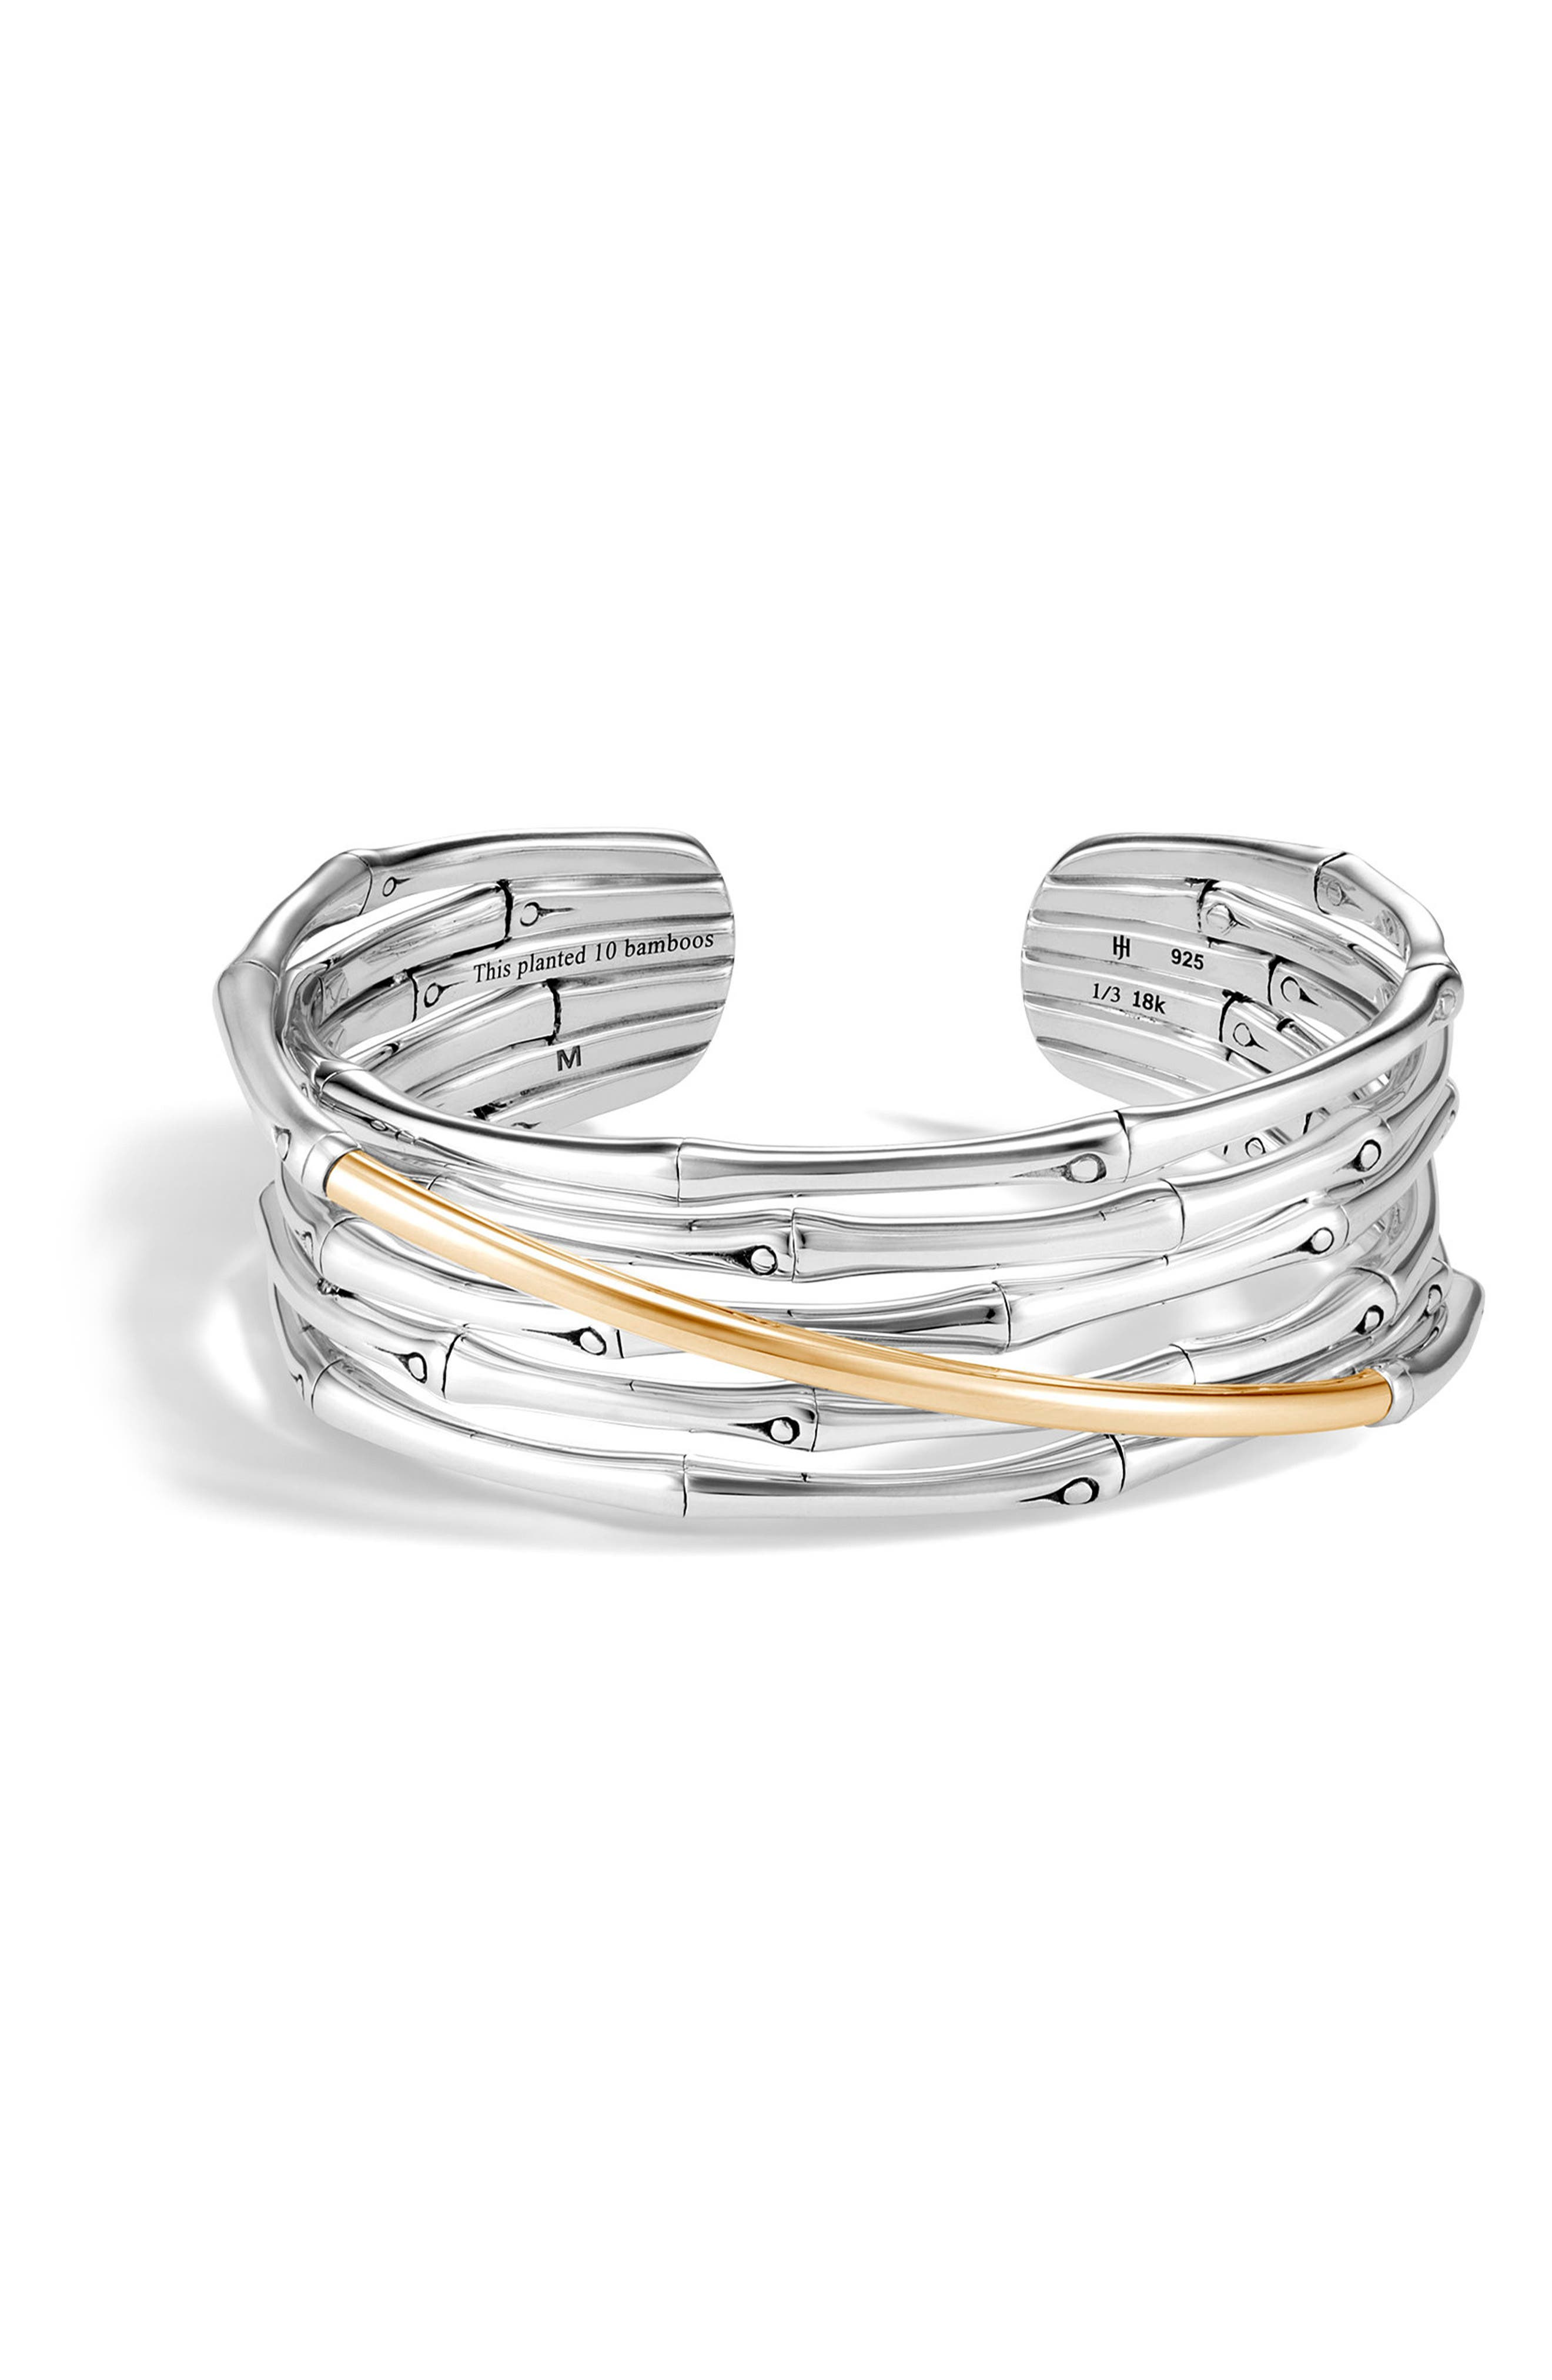 Bamboo 18K Gold & Silver Flex Cuff Bracelet,                             Main thumbnail 1, color,                             SILVER/ GOLD